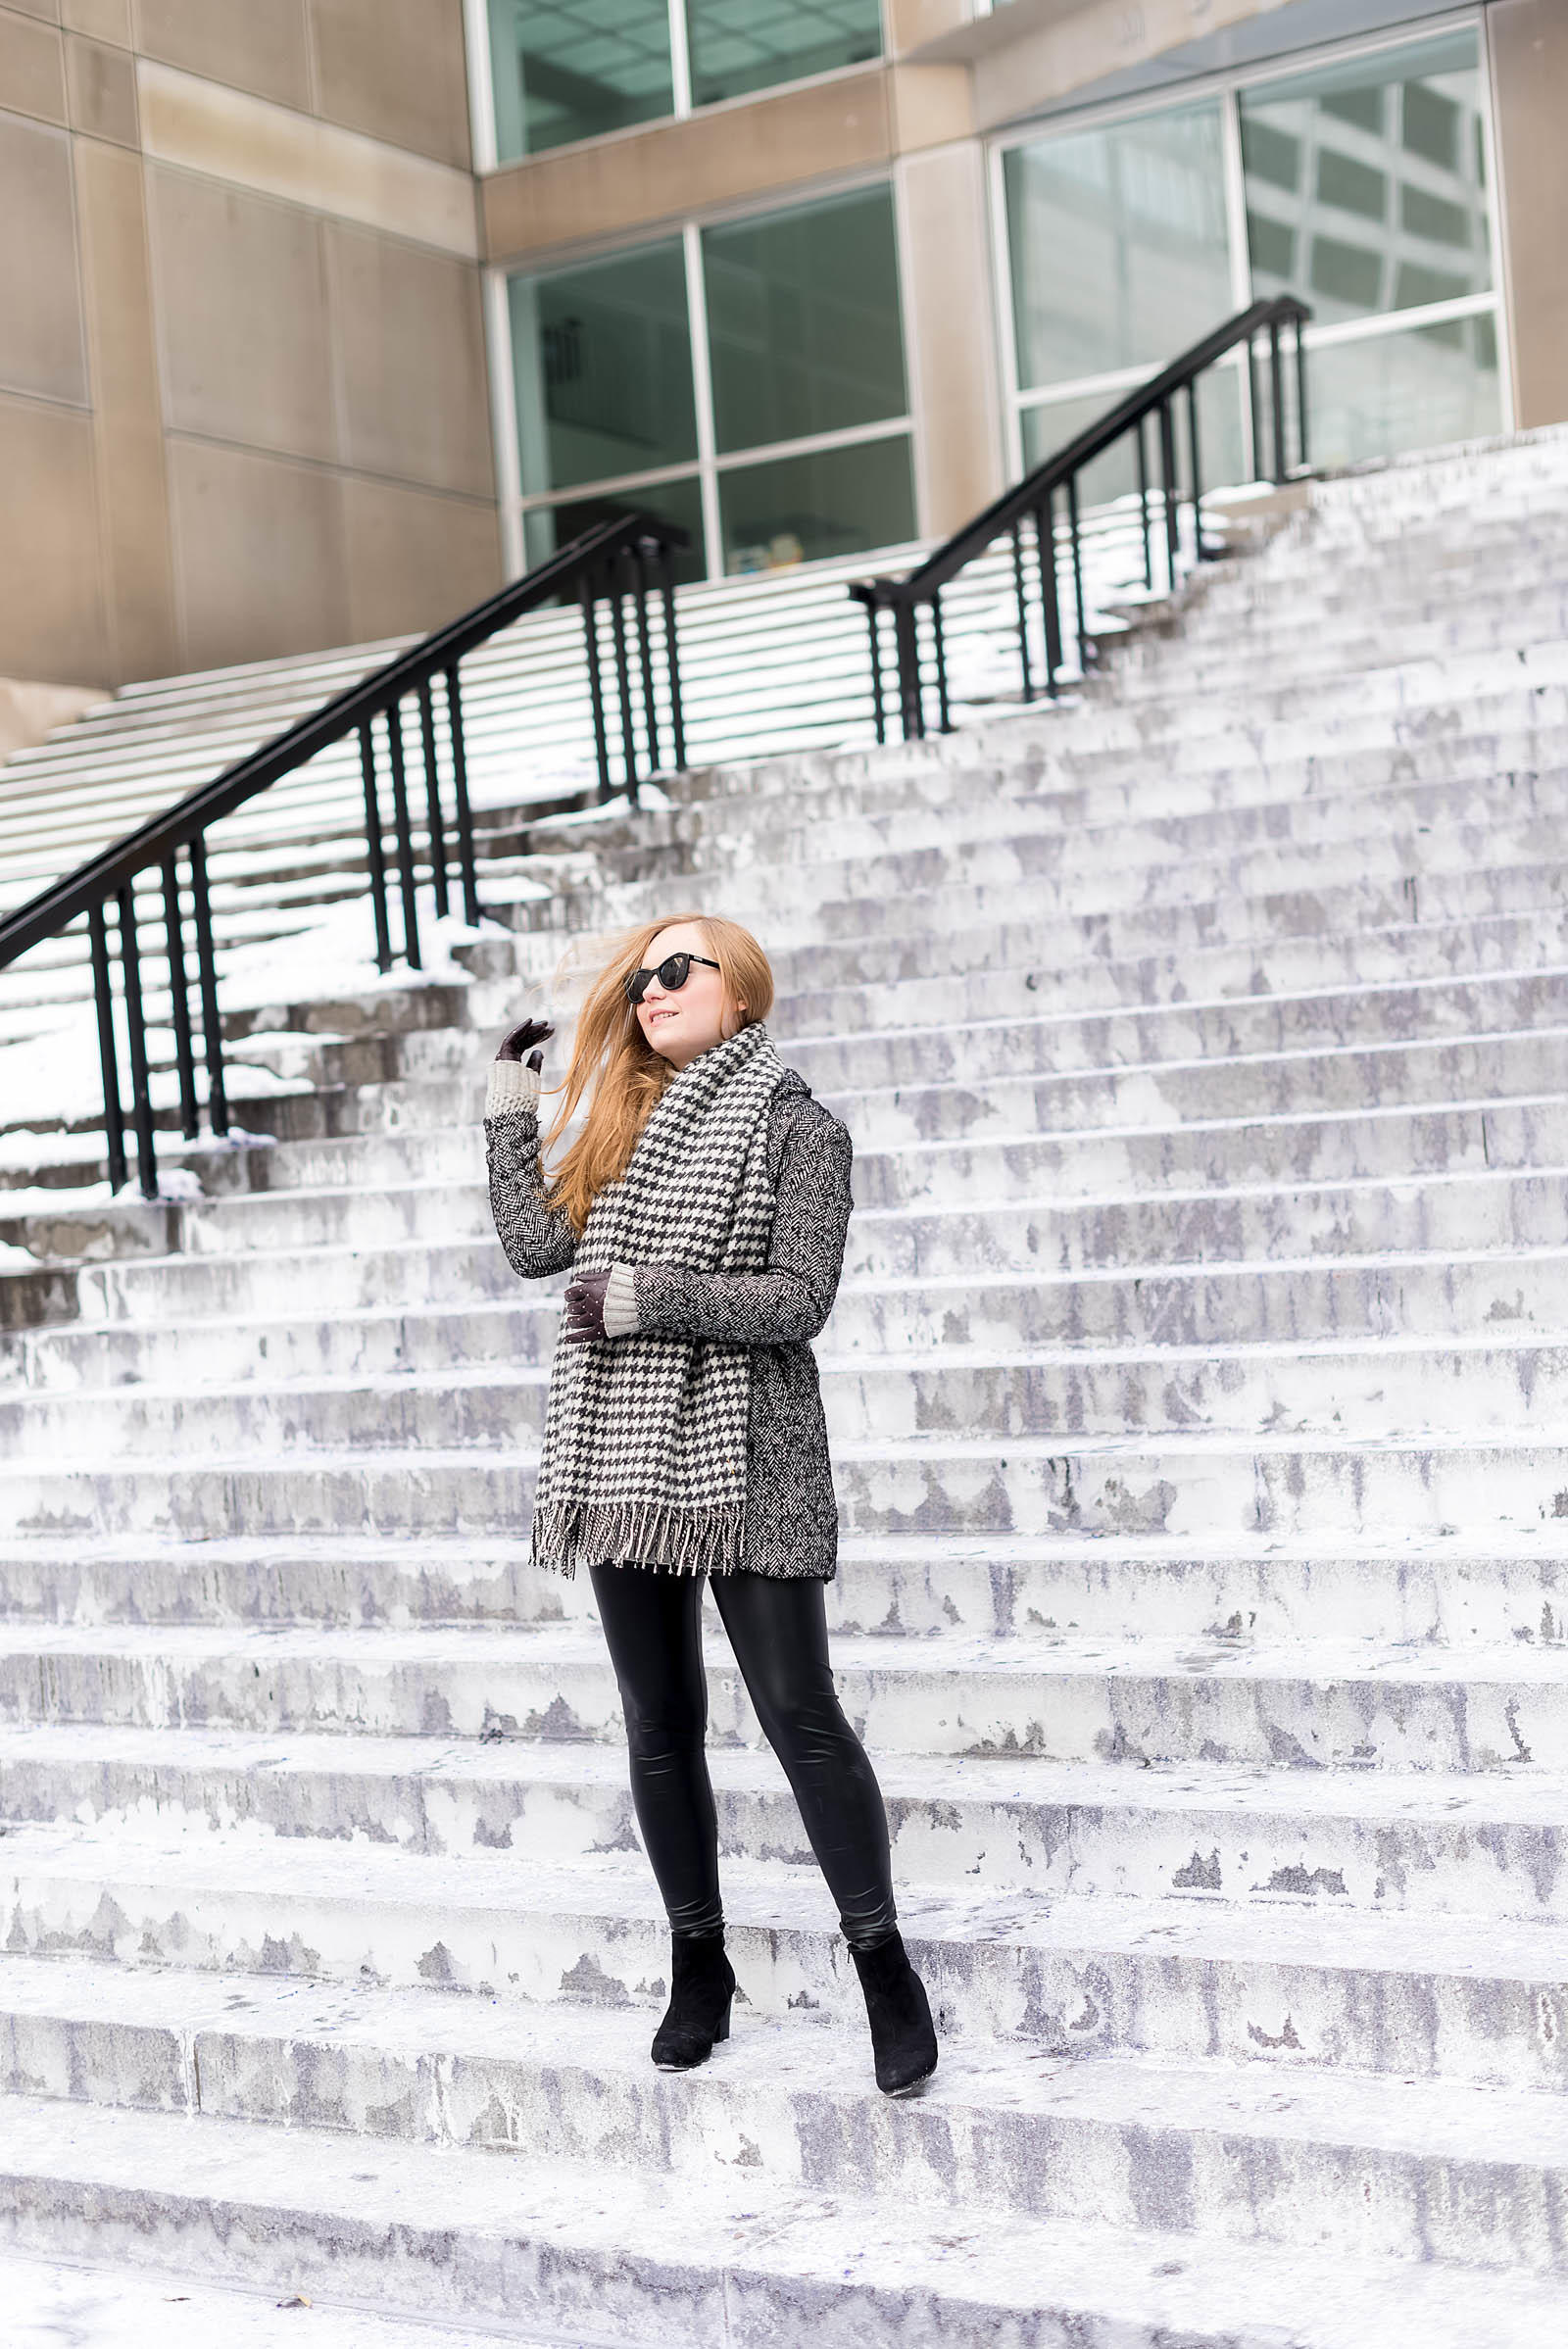 Herringbone Houndstooth Burgundy Leather Winter Outfit